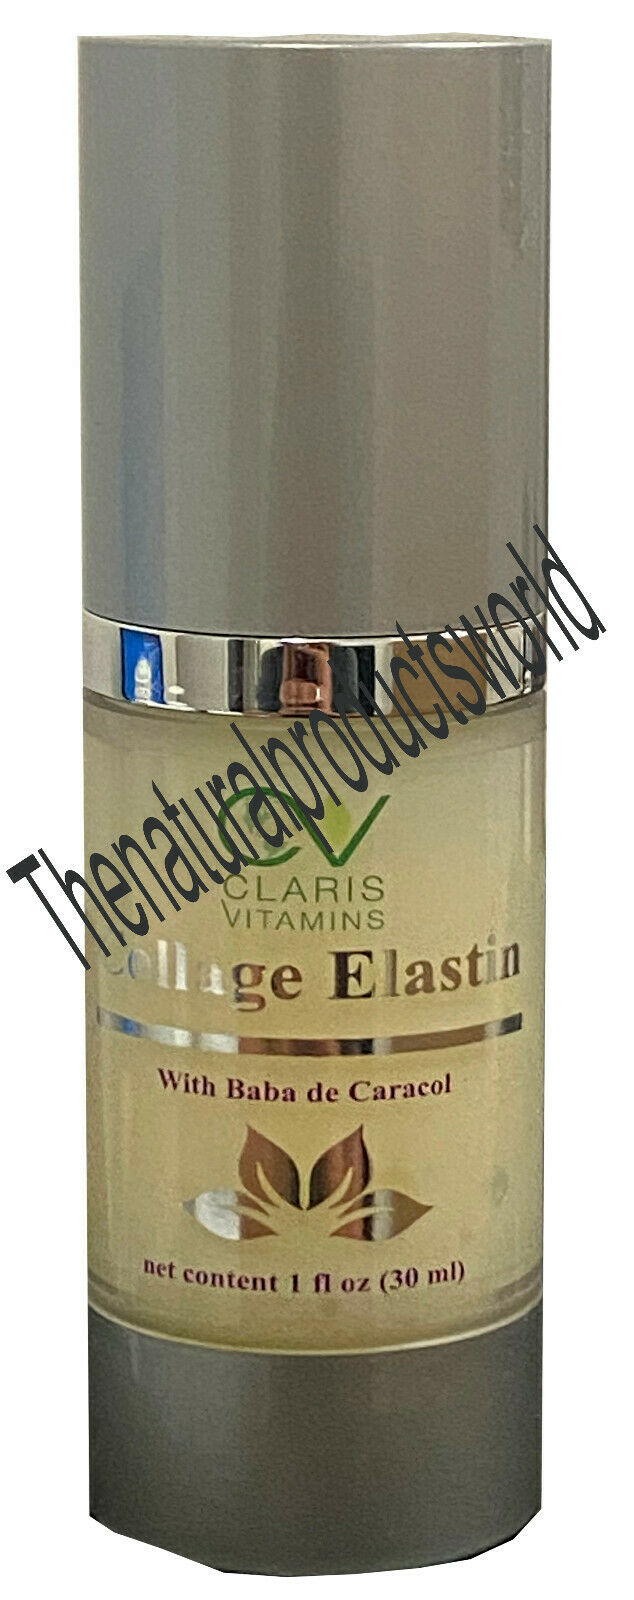 BABA DE CARACOL SNAIL EXTRACT & COLLAGEN ELASTIN CREAM GEL 1 Oz SKIN CARE